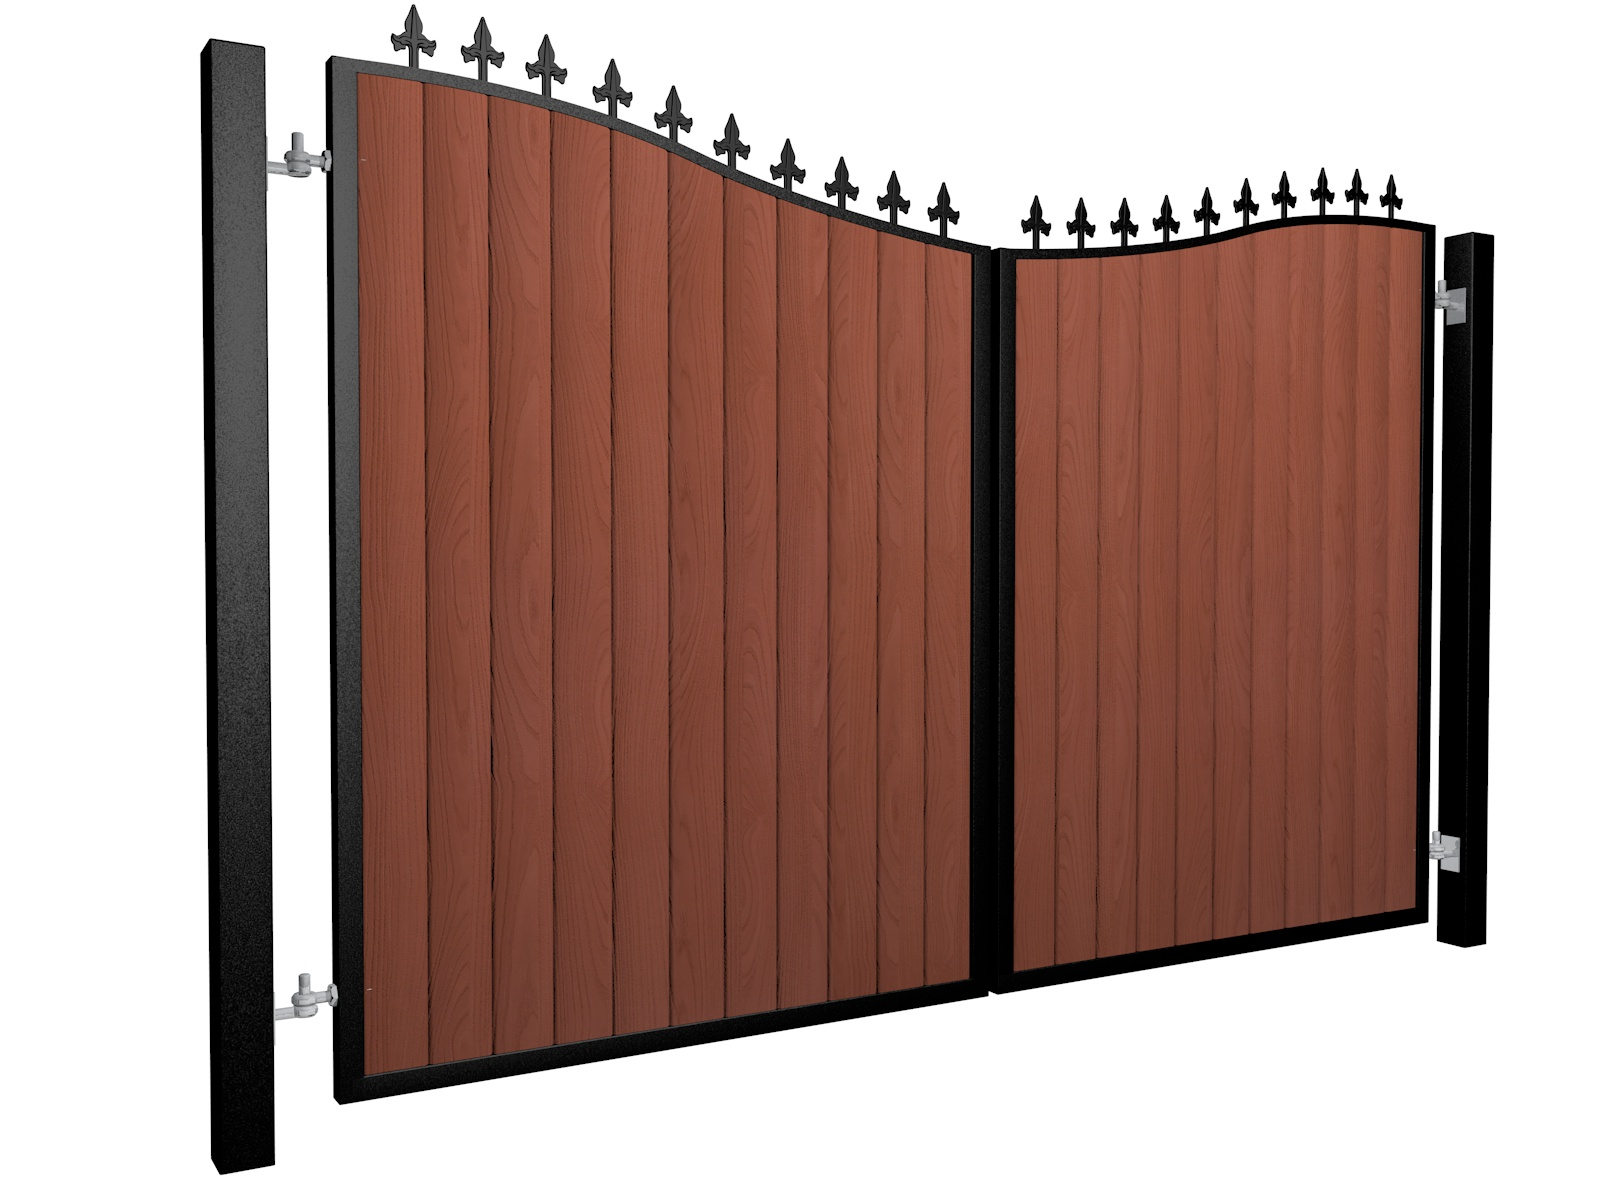 metal framed wood fill bow top automated driveway gate with finials